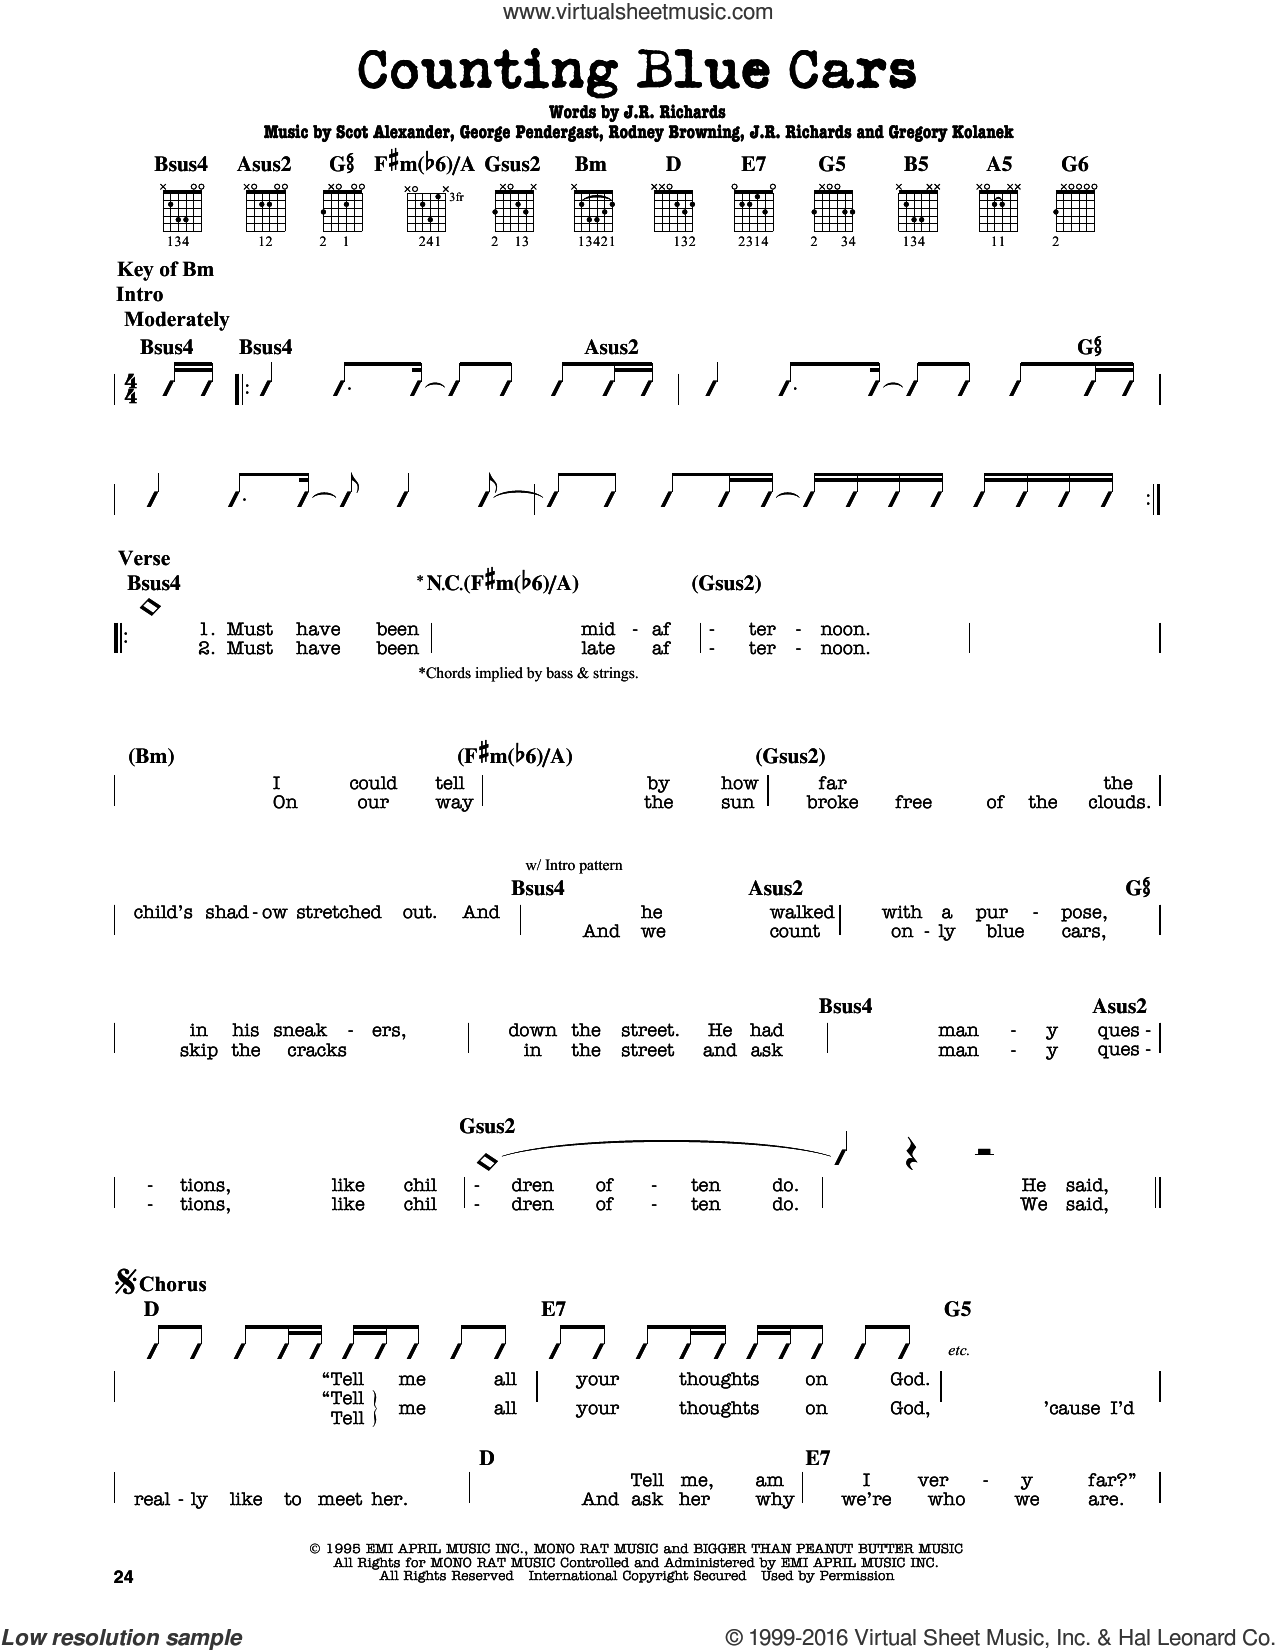 Counting Blue Cars sheet music for guitar solo (lead sheet) by Dishwalla. Score Image Preview.